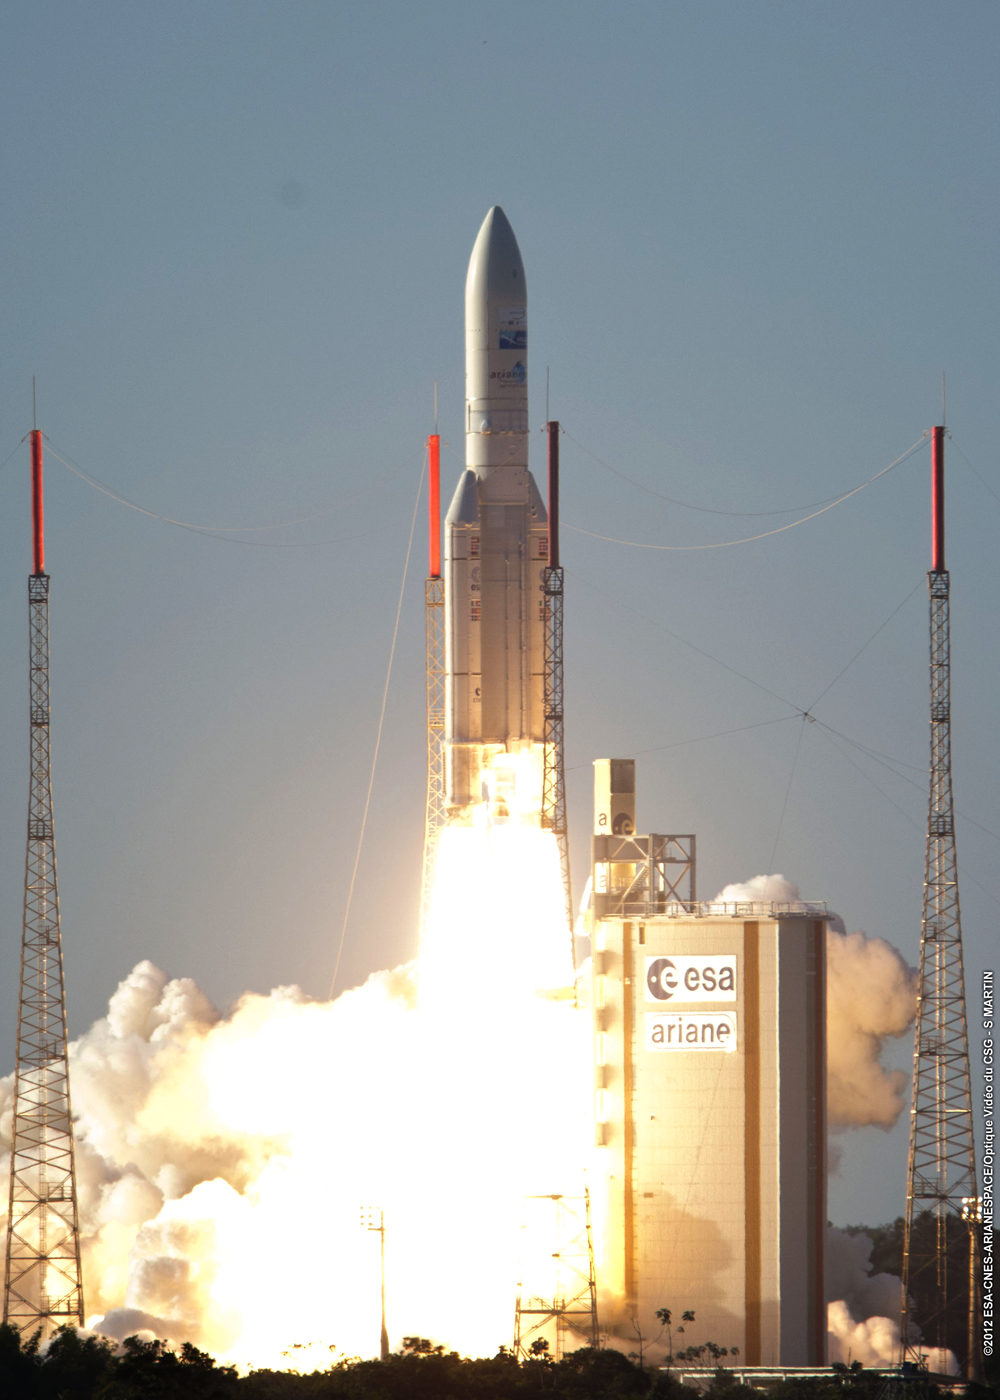 European Rocket Launches 2 Satellites in 50th Successful Blastoff